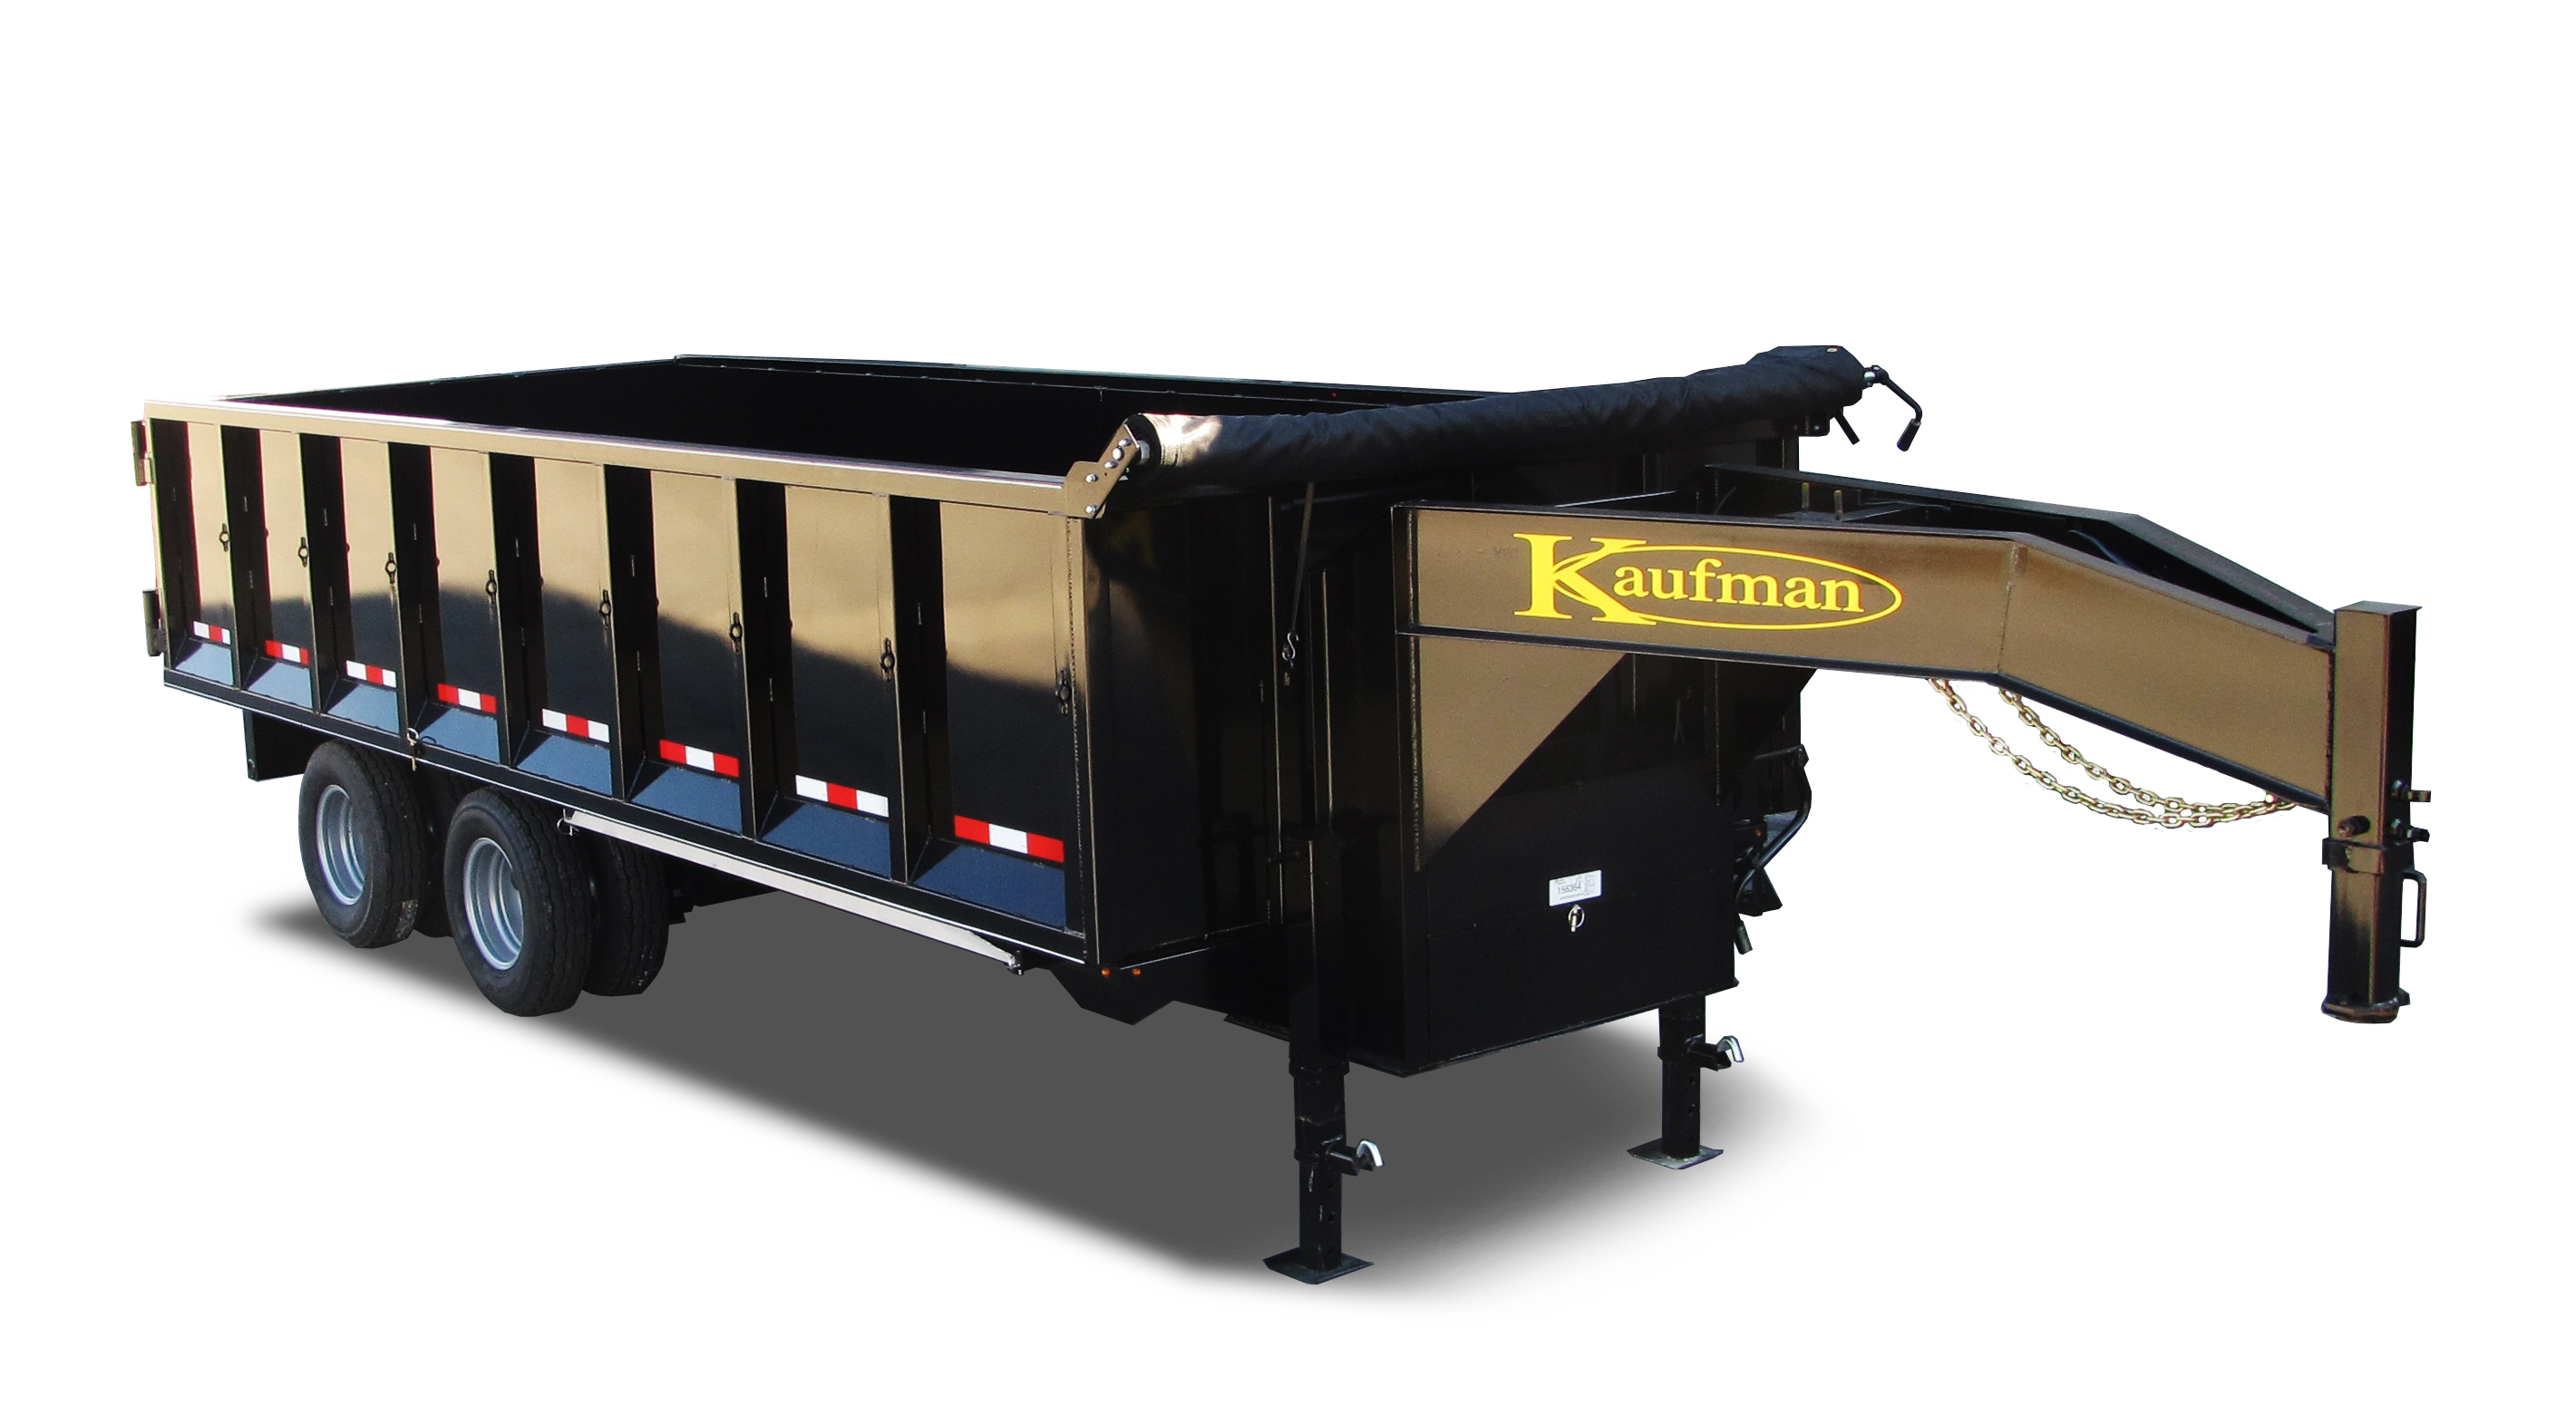 Tandem Dual Gooseneck Dump Trailer - For Sale by Kaufman Trailers on wire sleeve, wire lamp, wire clothing, wire cap, wire leads, wire nut, wire ball, wire connector, wire antenna, wire holder,